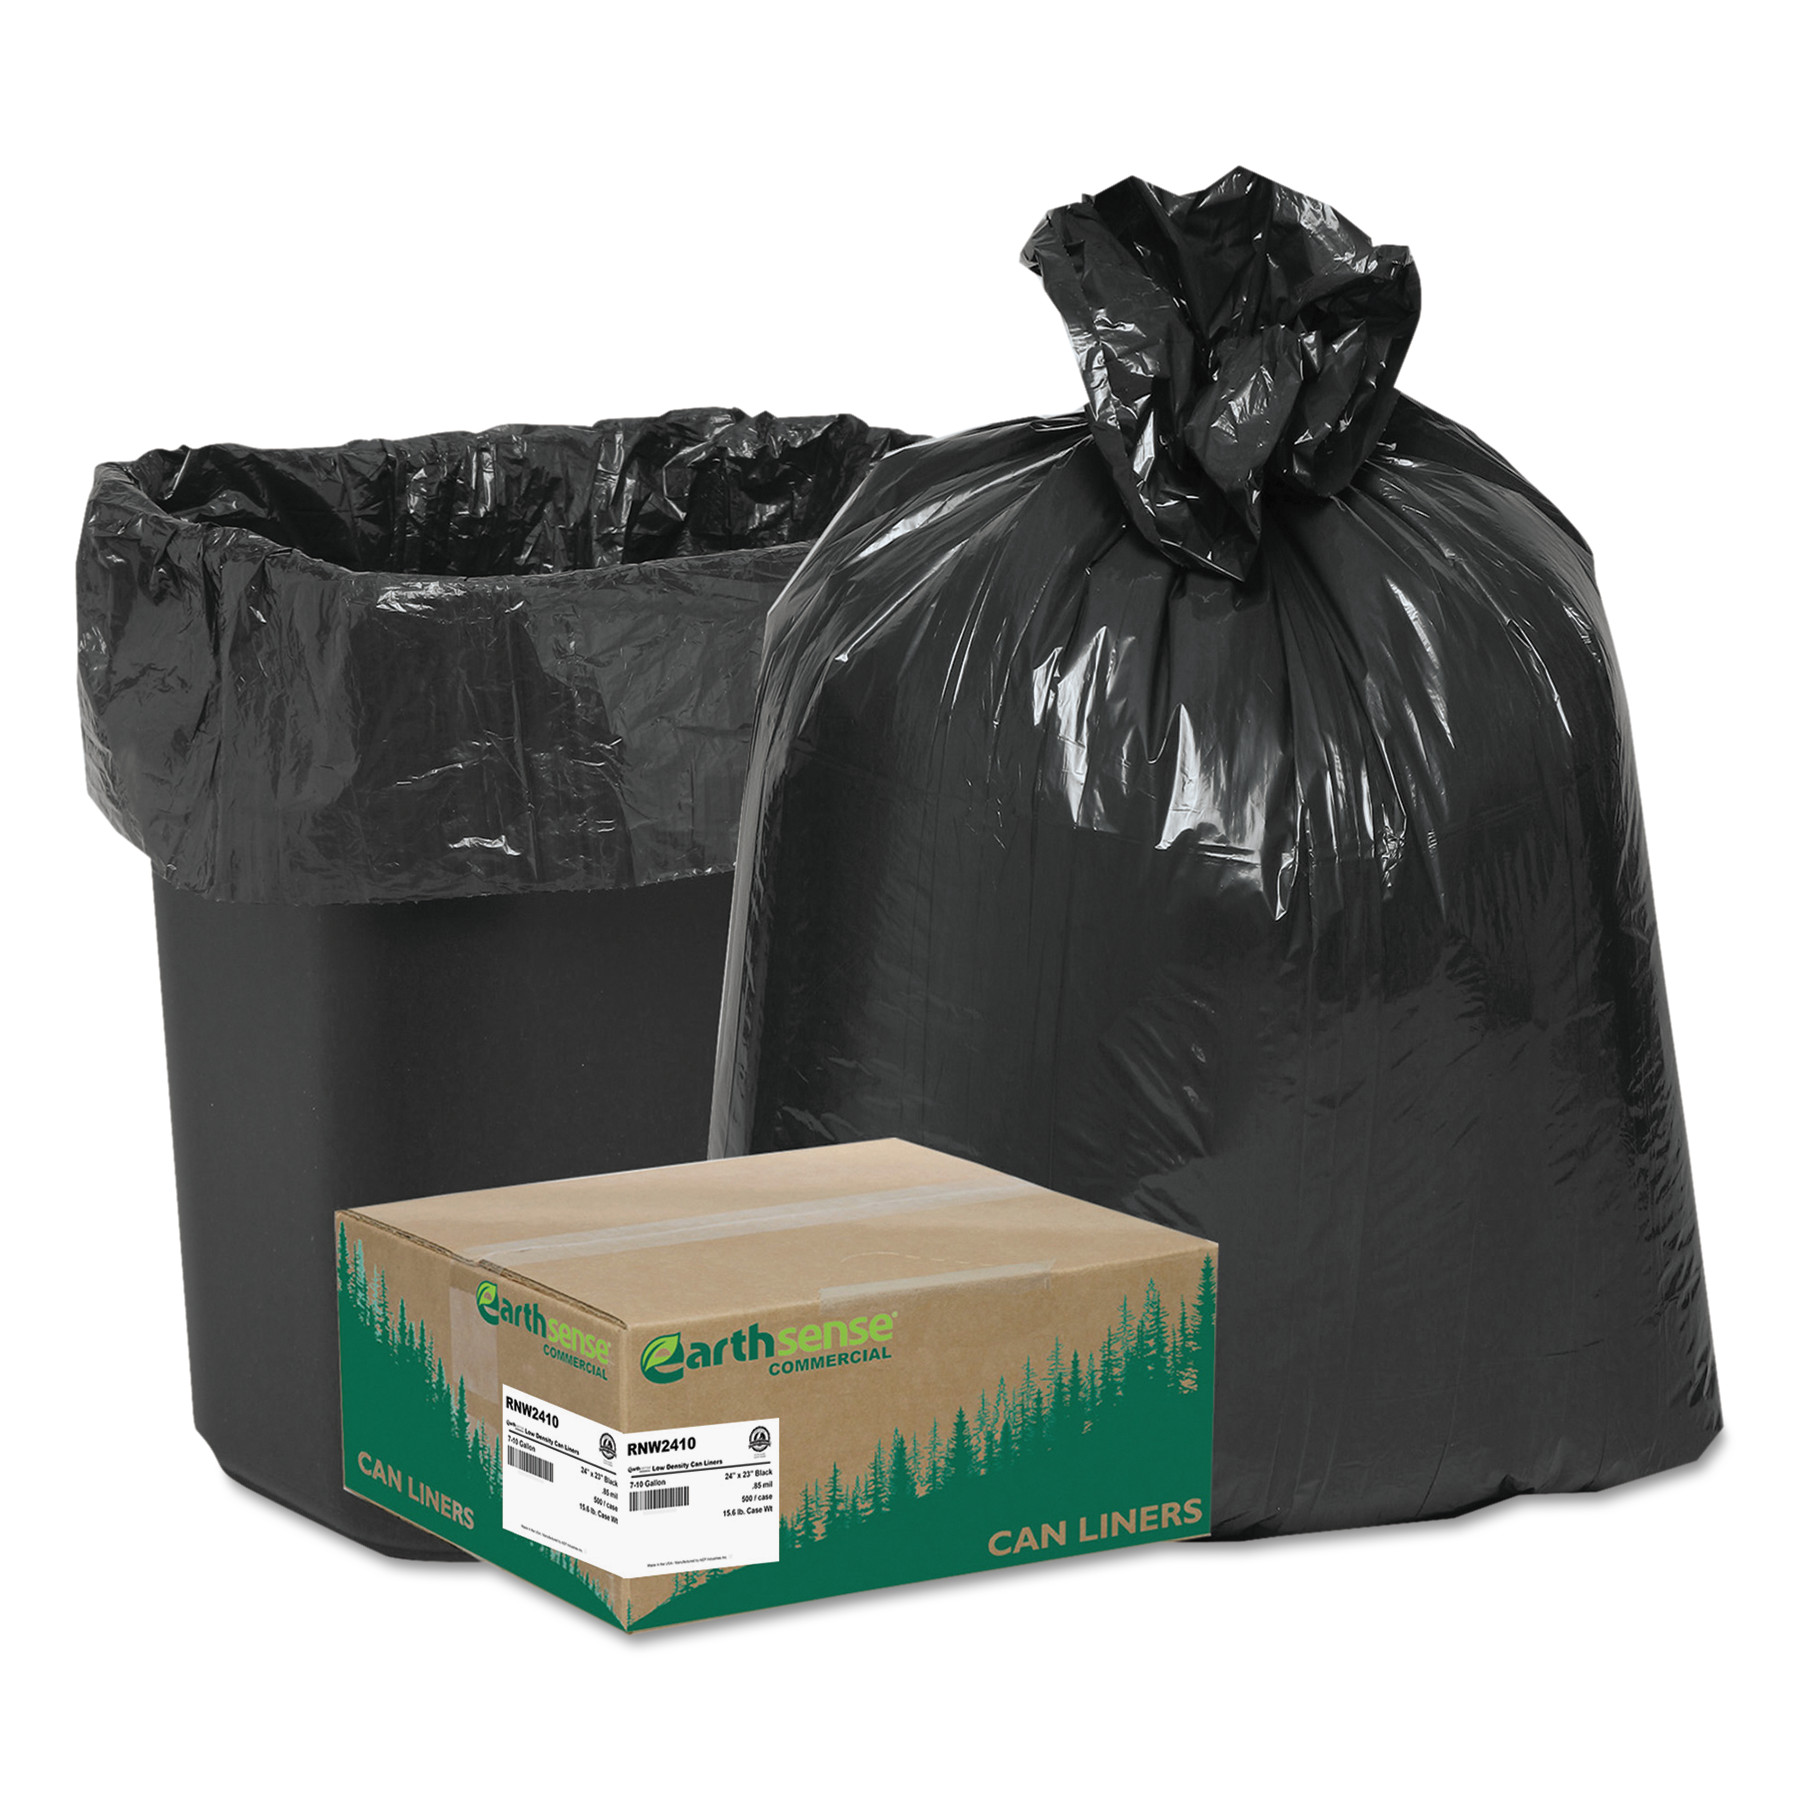 Earthsense Commercial Black Can Liners, 7-10 Gallon, 500 Count